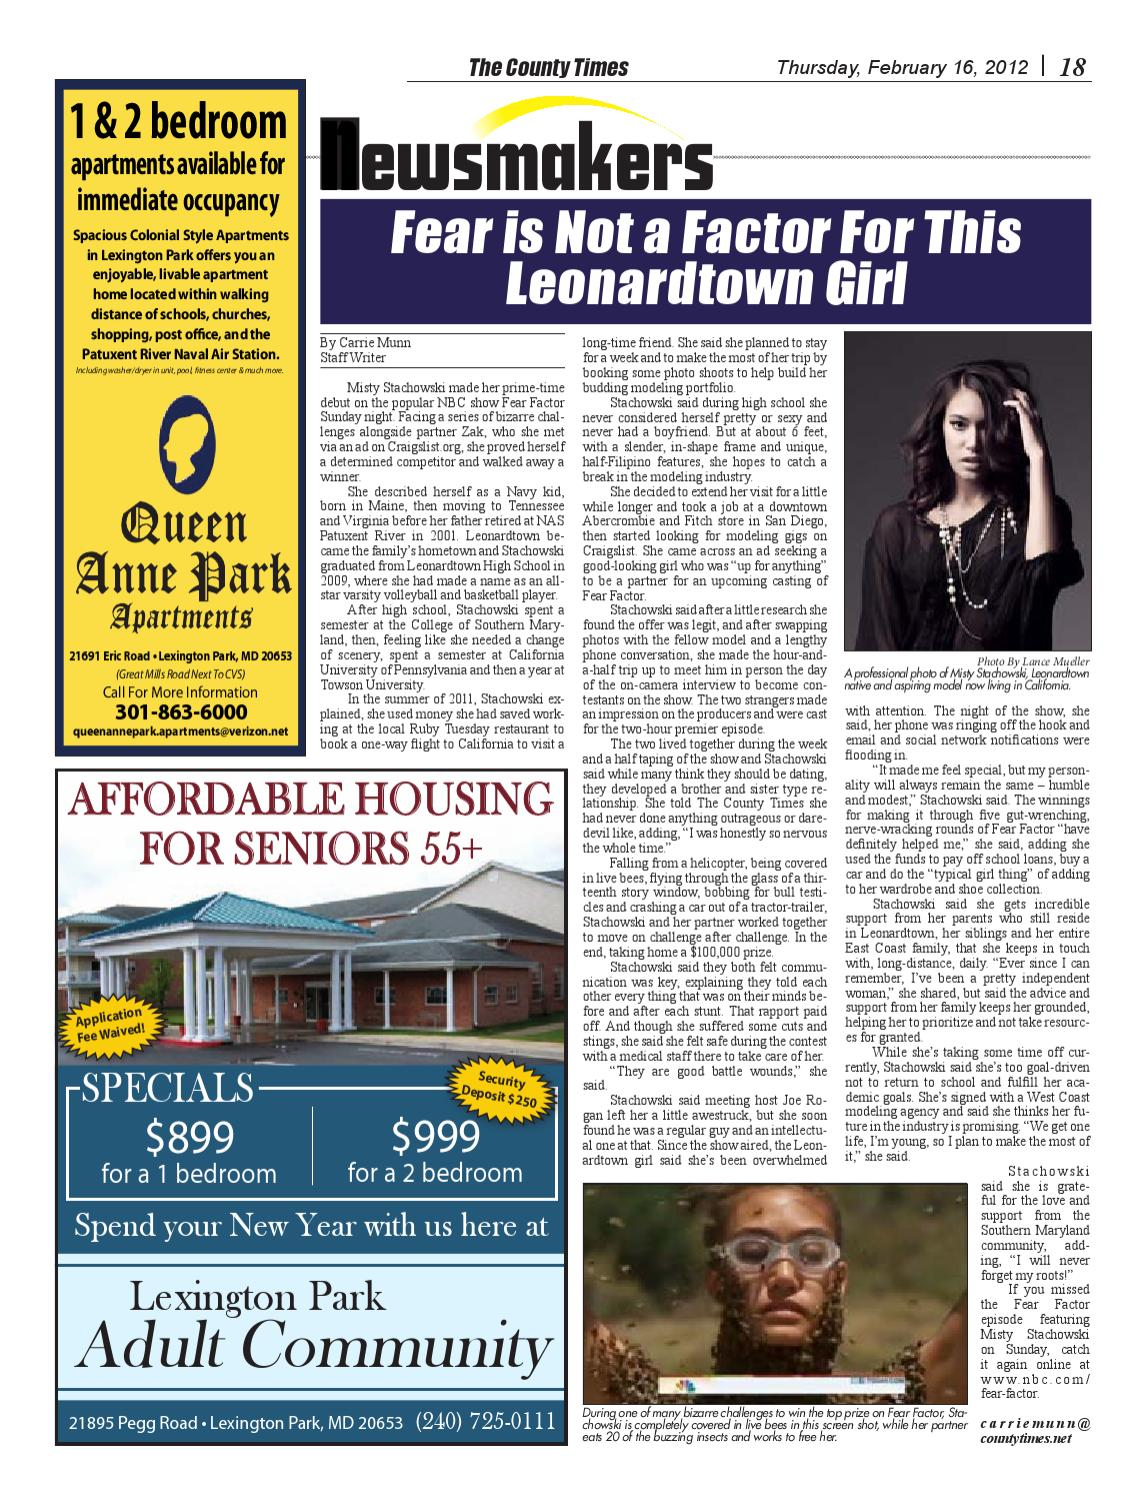 2012-02-16 The County Times by Southern Maryland Online ...